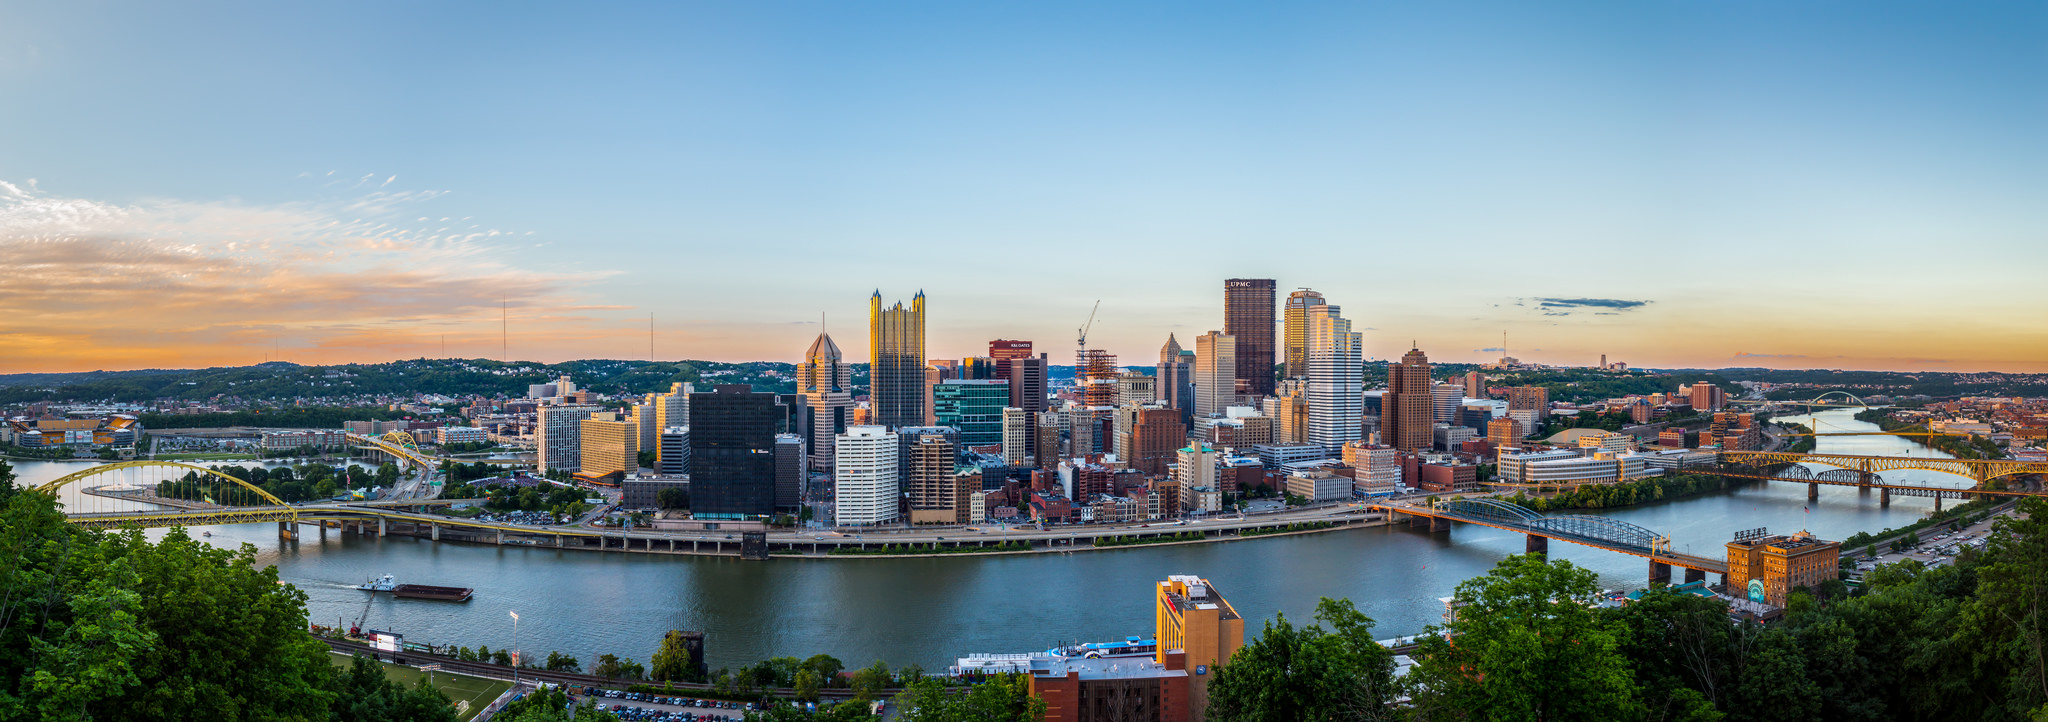 Have at it, Pittsburgh! Photo by Dan Chmill, via Flickr creative commons.